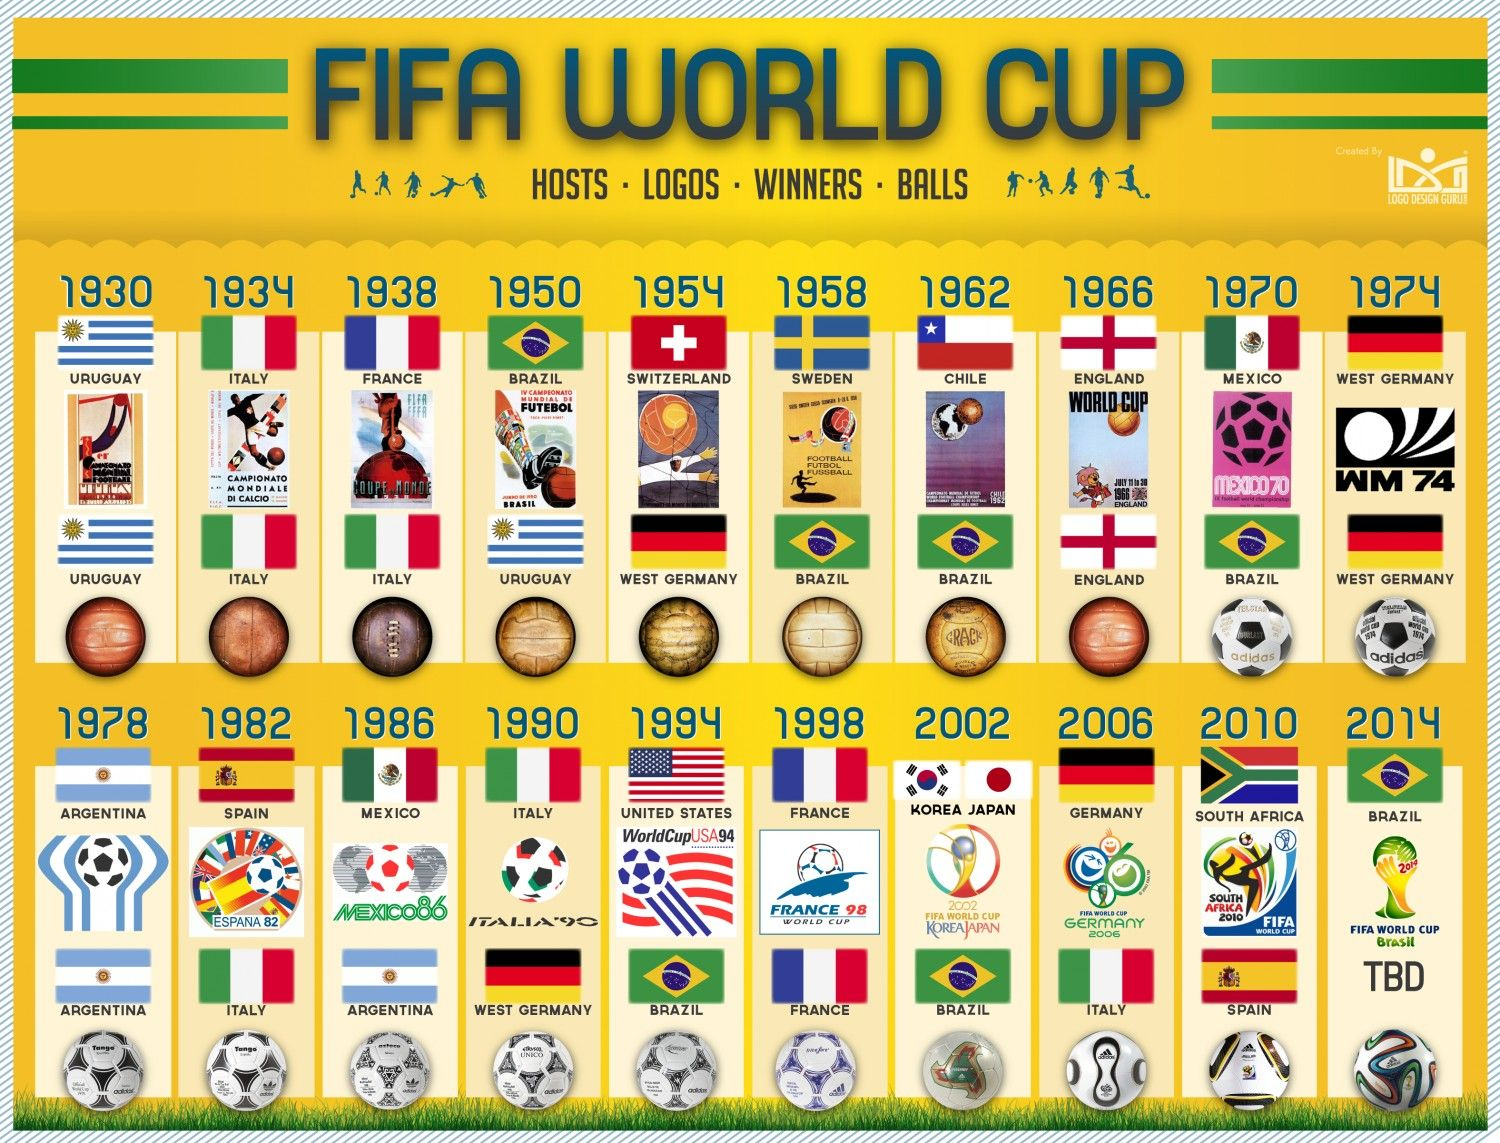 Fifa World Cup Hosts Logos Winners And Balls Visual Ly Fifa World Cup World Cup Logo World Cup